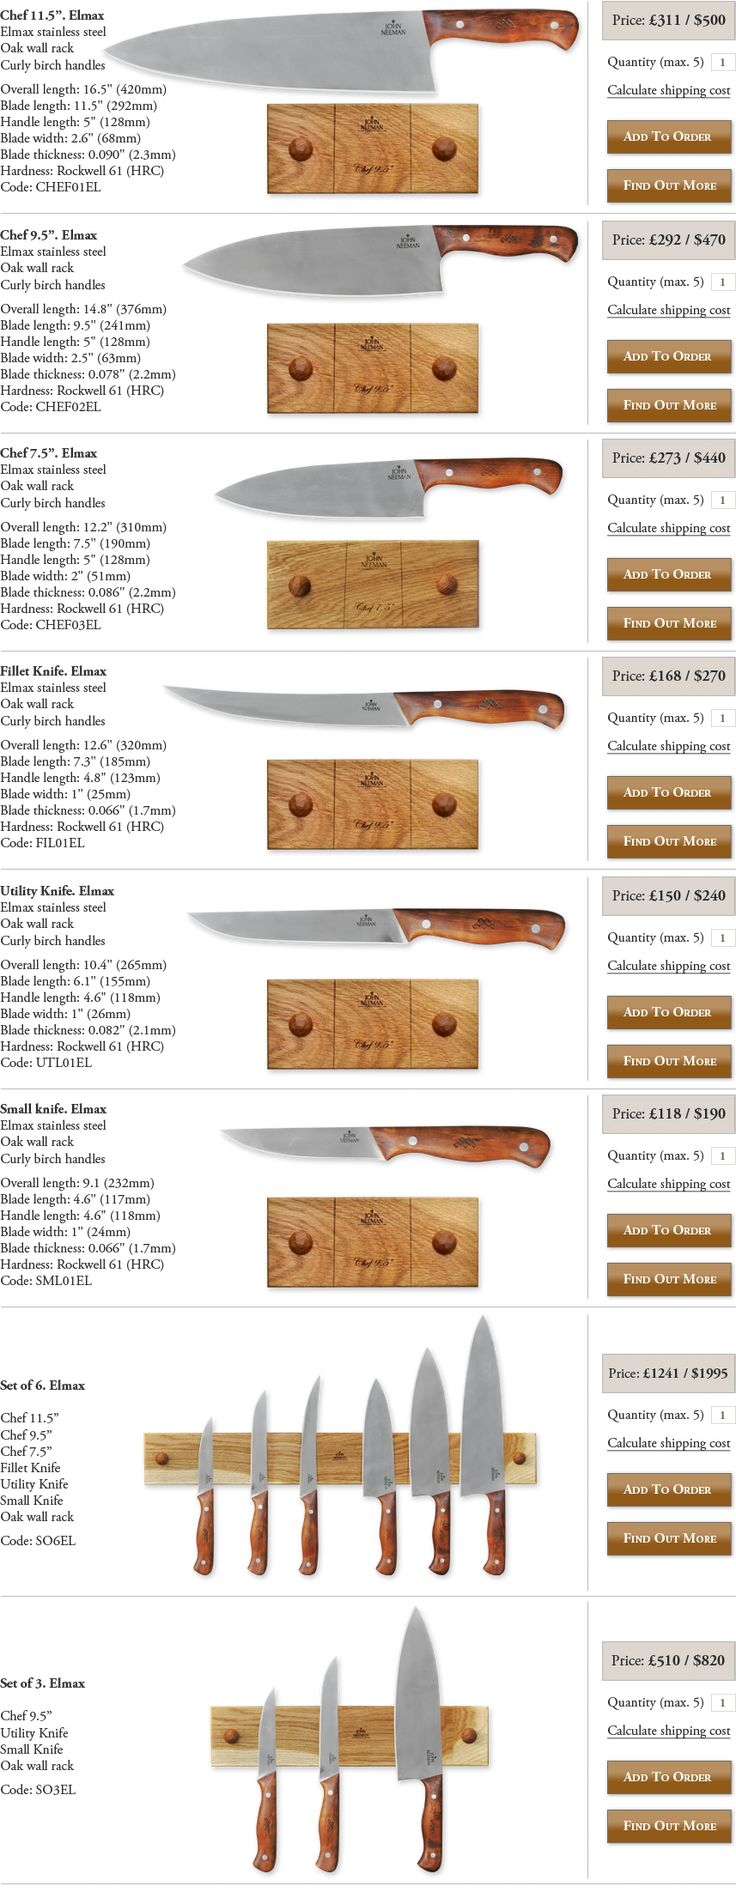 508 best knives fixed images on pinterest custom knives knife neemantools elmax kitchen knives sold seperately and has optional sets set of 6 is